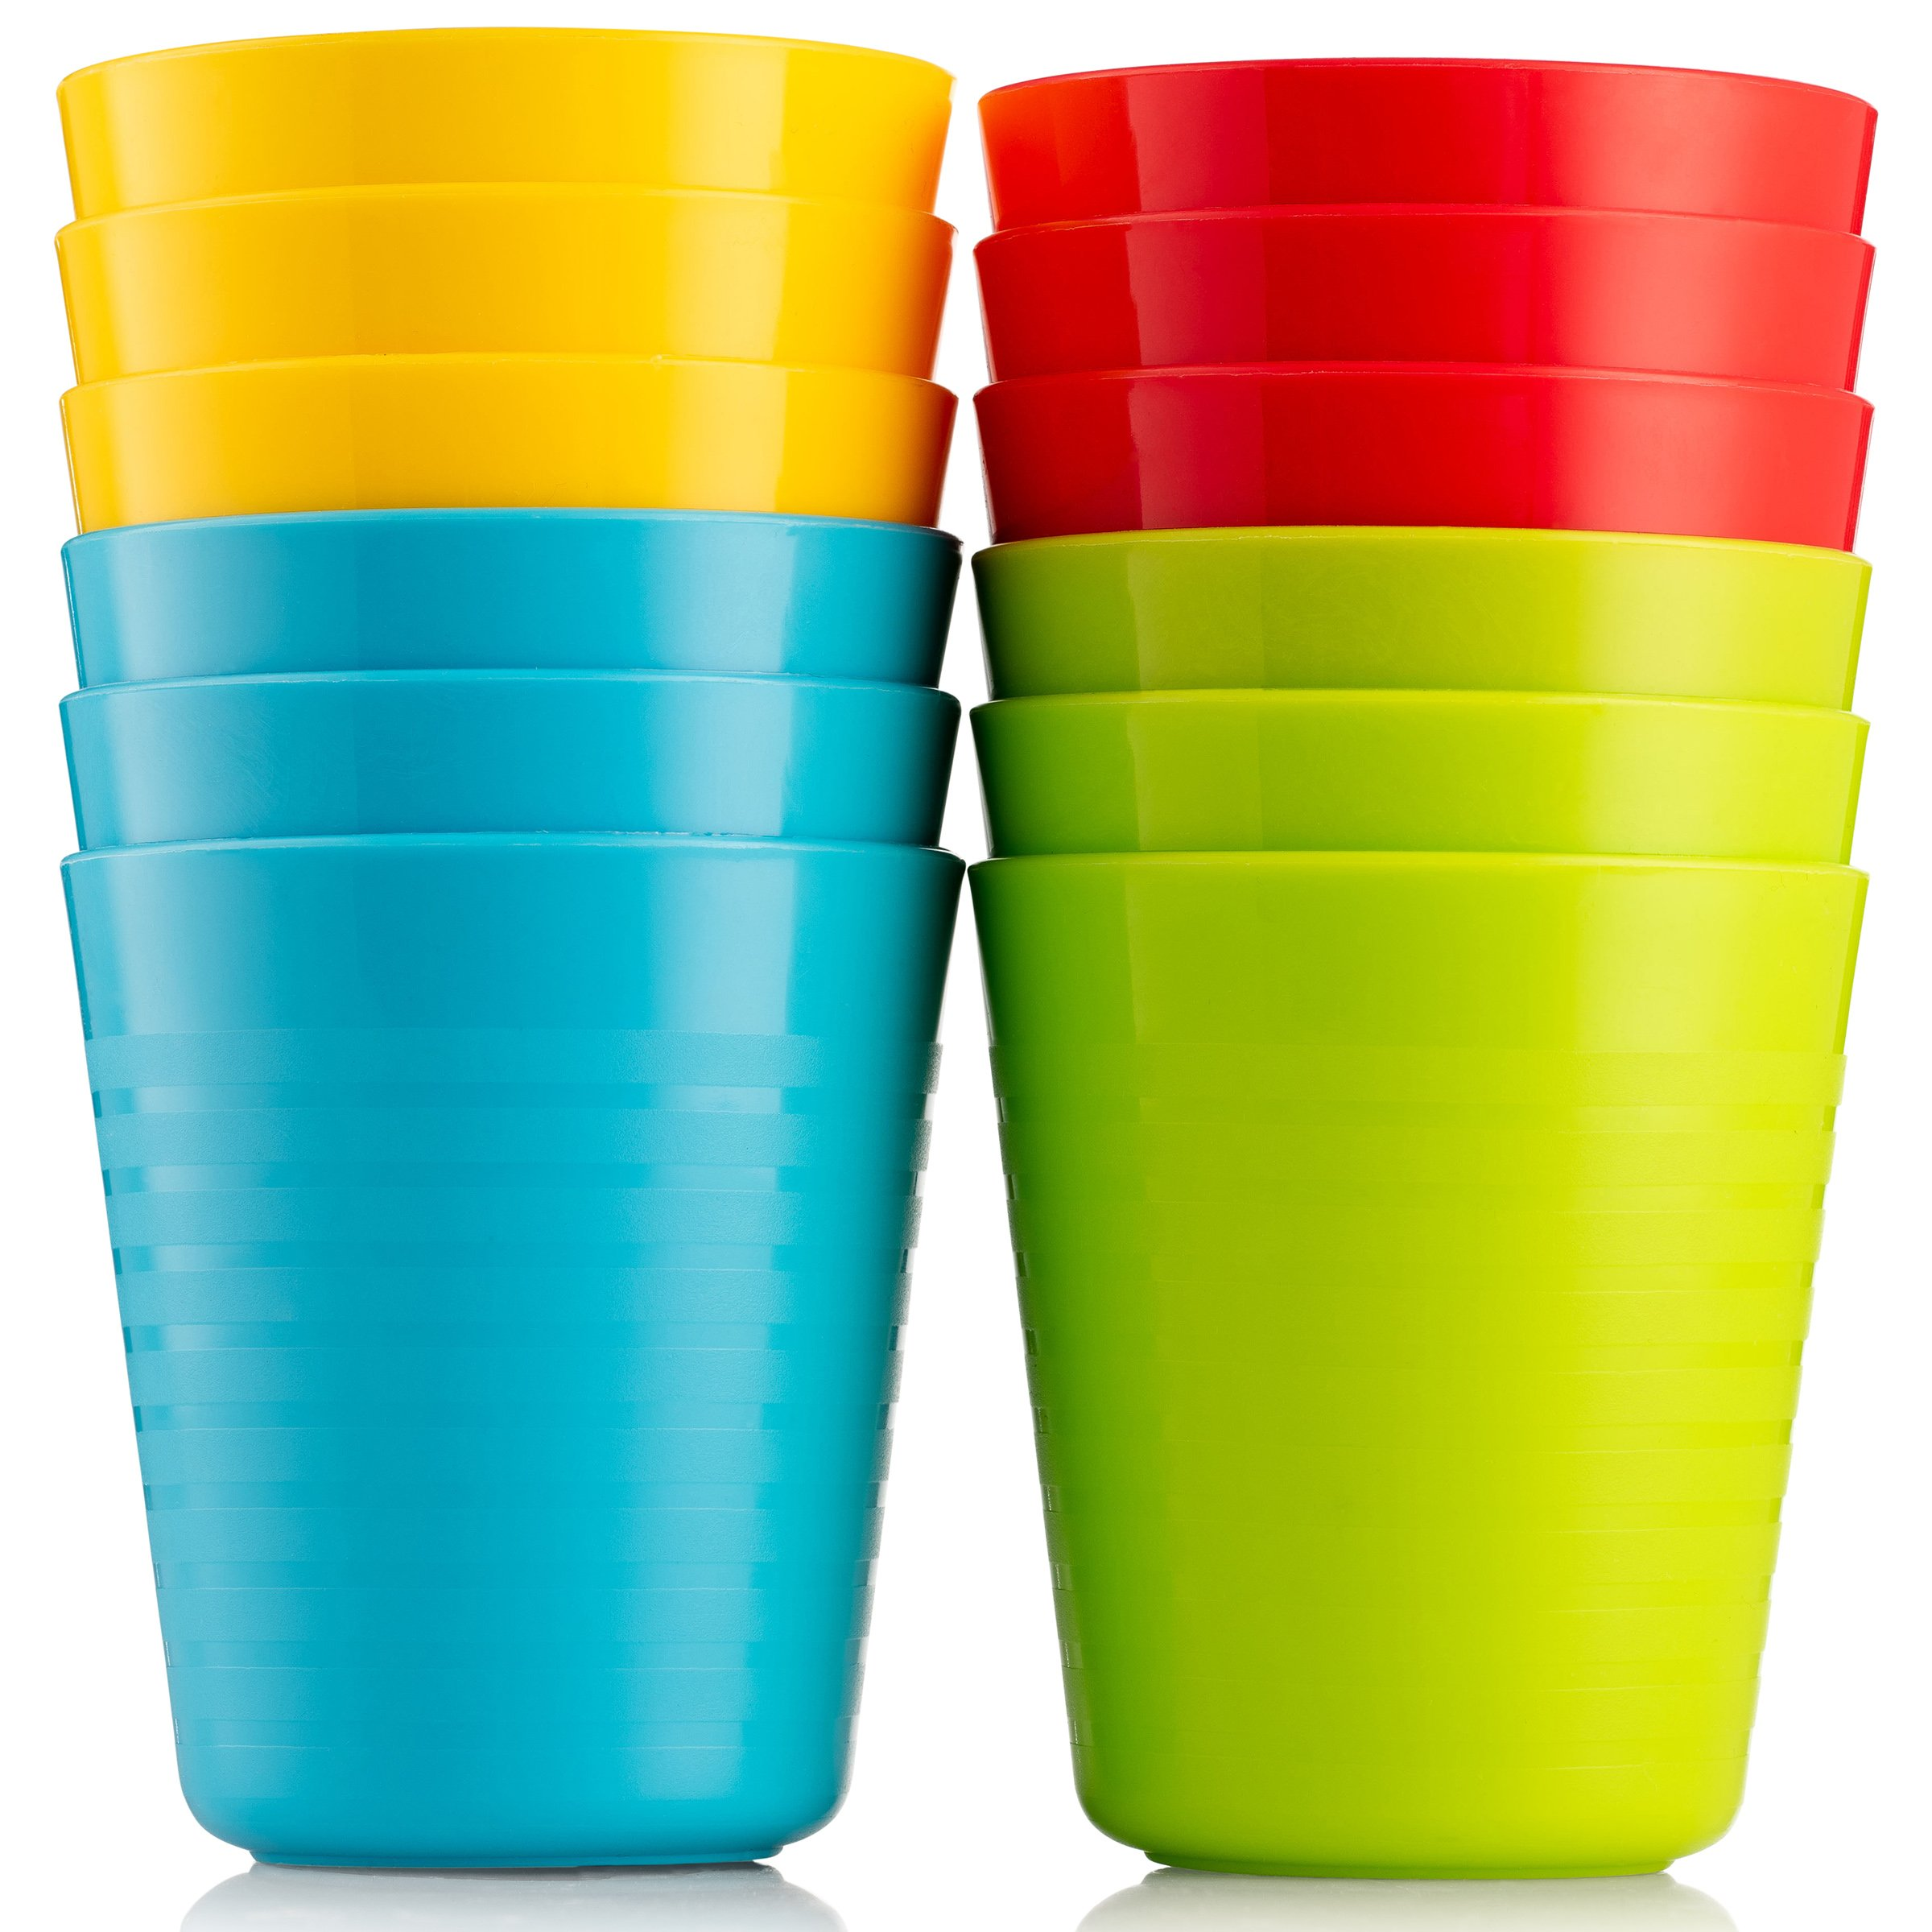 Kids Cups By Plaskidy - The Toddler Cup Pack Includes 12 Plastic Cups for Kids - 8 Oz, Fun Bright Colors - Kids Tumblers are Unbreakable, Dishwasher Safe, BPA Free - Great for Picnic & Party Cups (12)